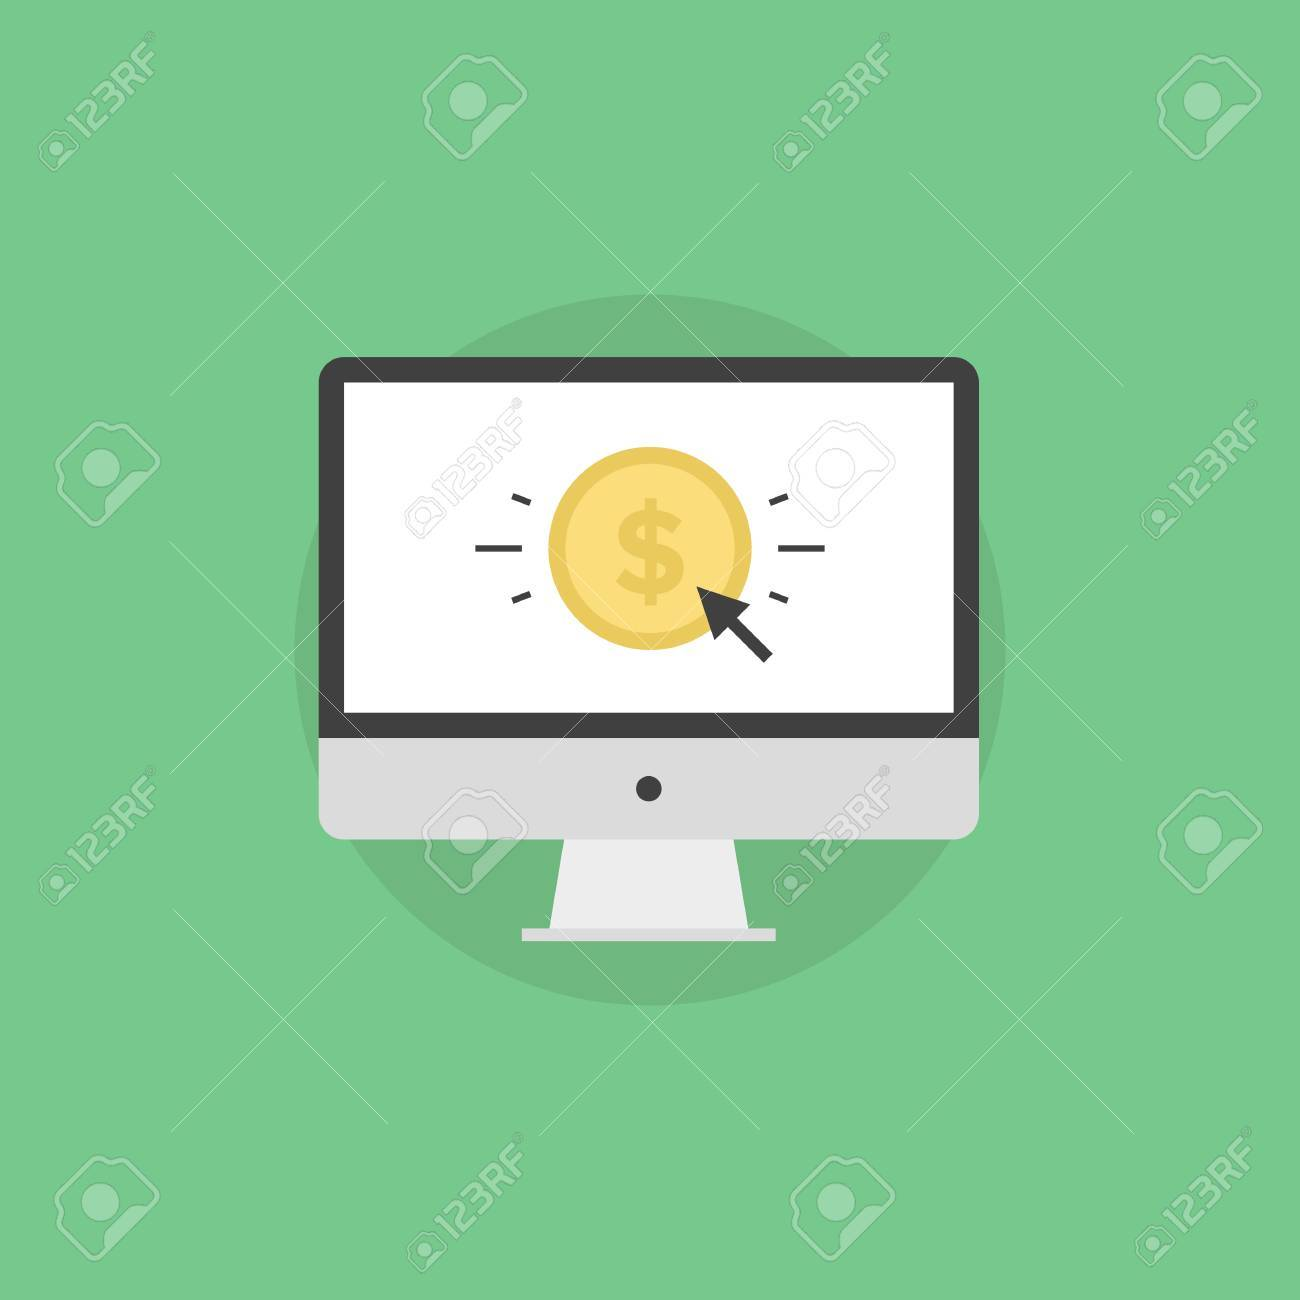 Online money making, success internet business, e-commerce payment, finance transfer and transaction. Flat icon modern design style vector illustration concept.